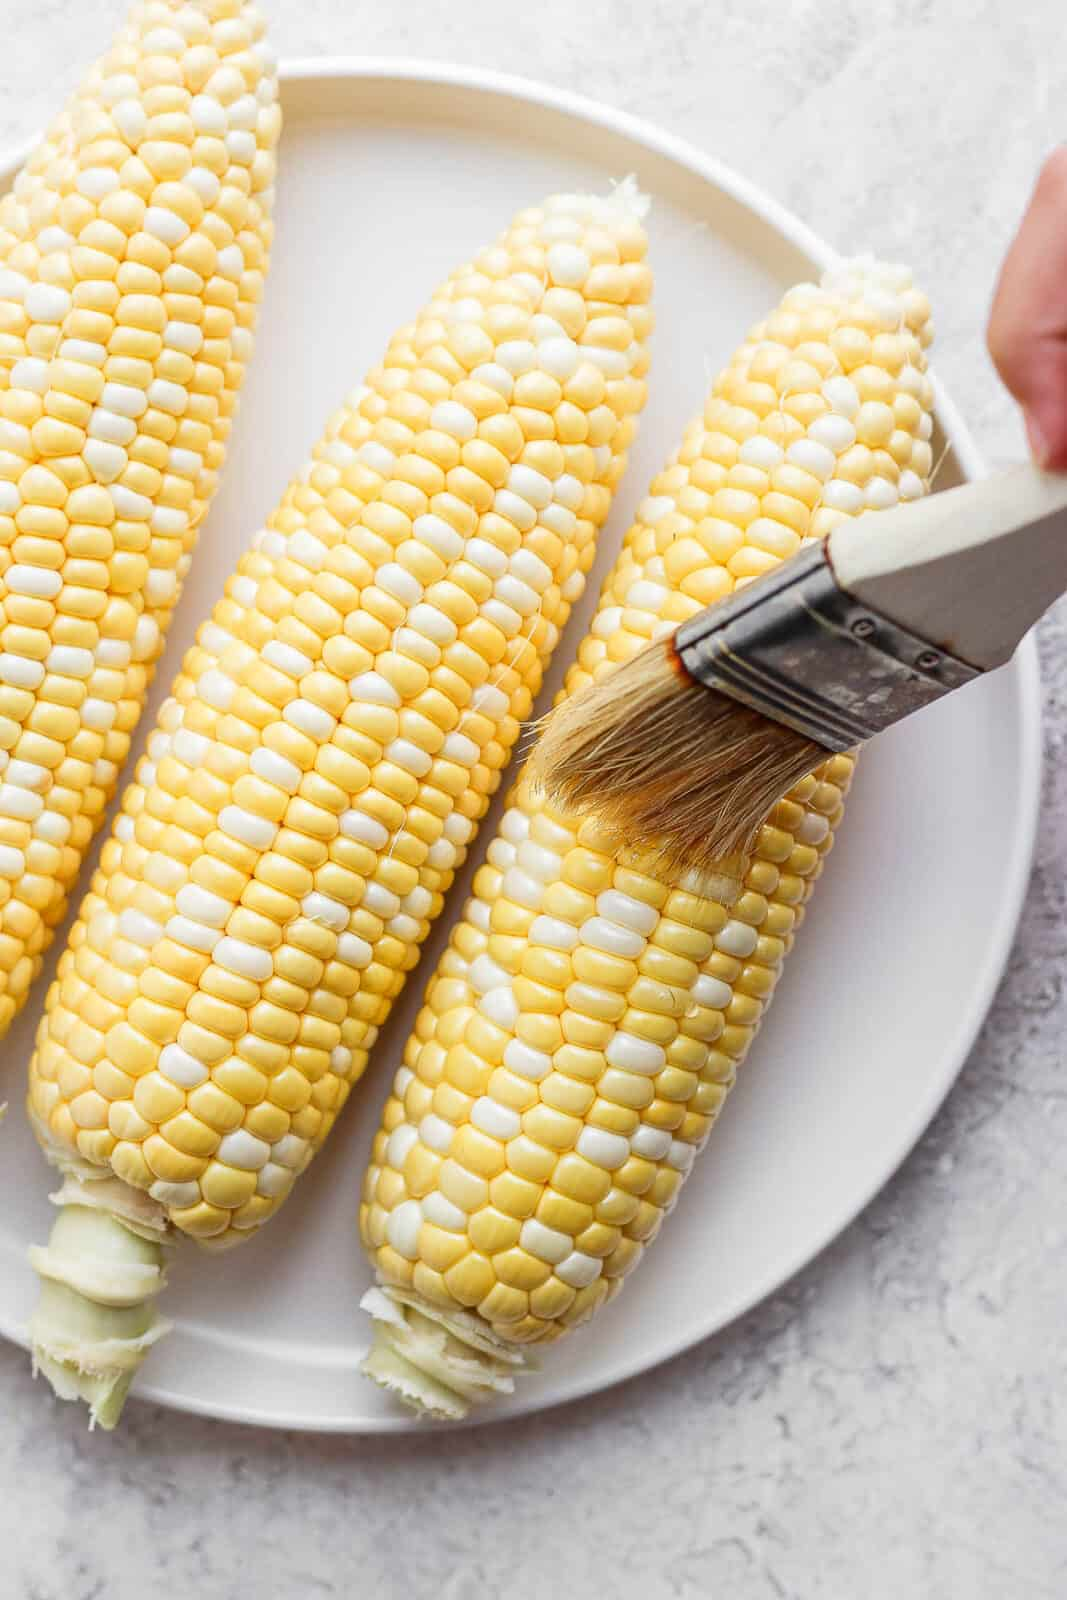 Someone brushing olive oil on a piece of sweet corn before cooking.